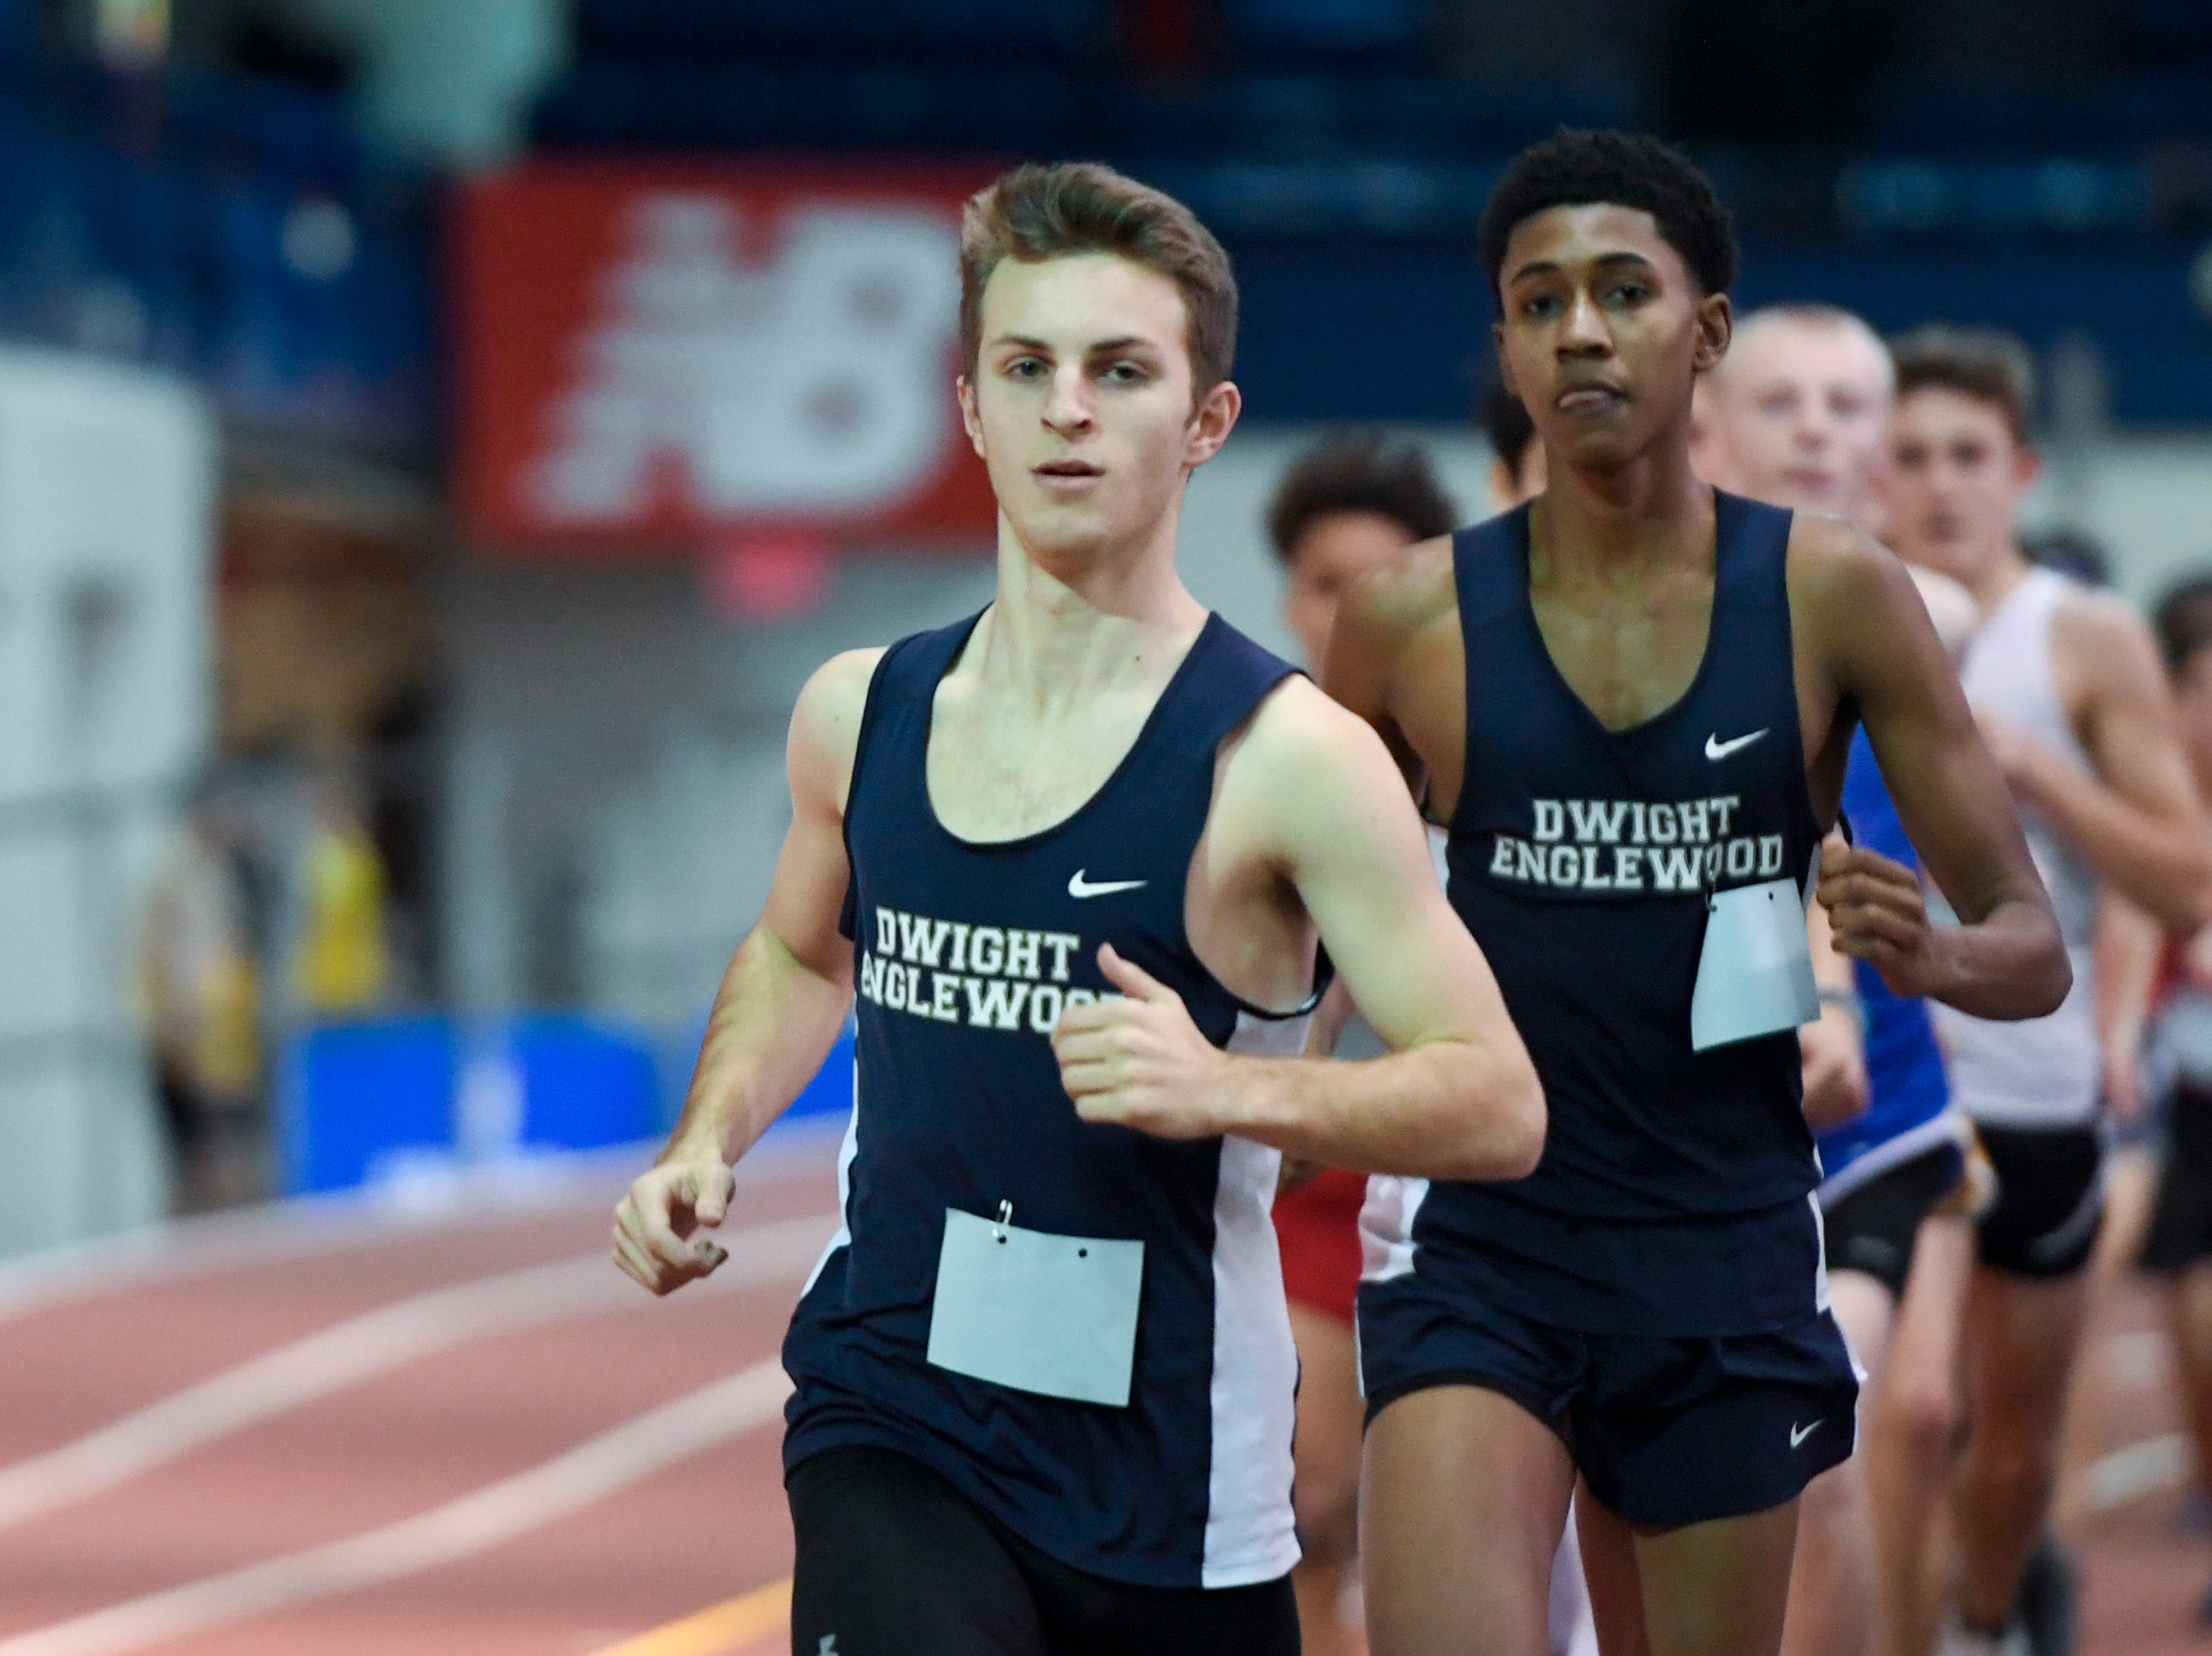 Jeremy Bronstein came in first for Dwight Englewood in the 3200-meter race during the NJIC track meet at the Armory Track on Monday, Jan. 7, 2019, in New York.